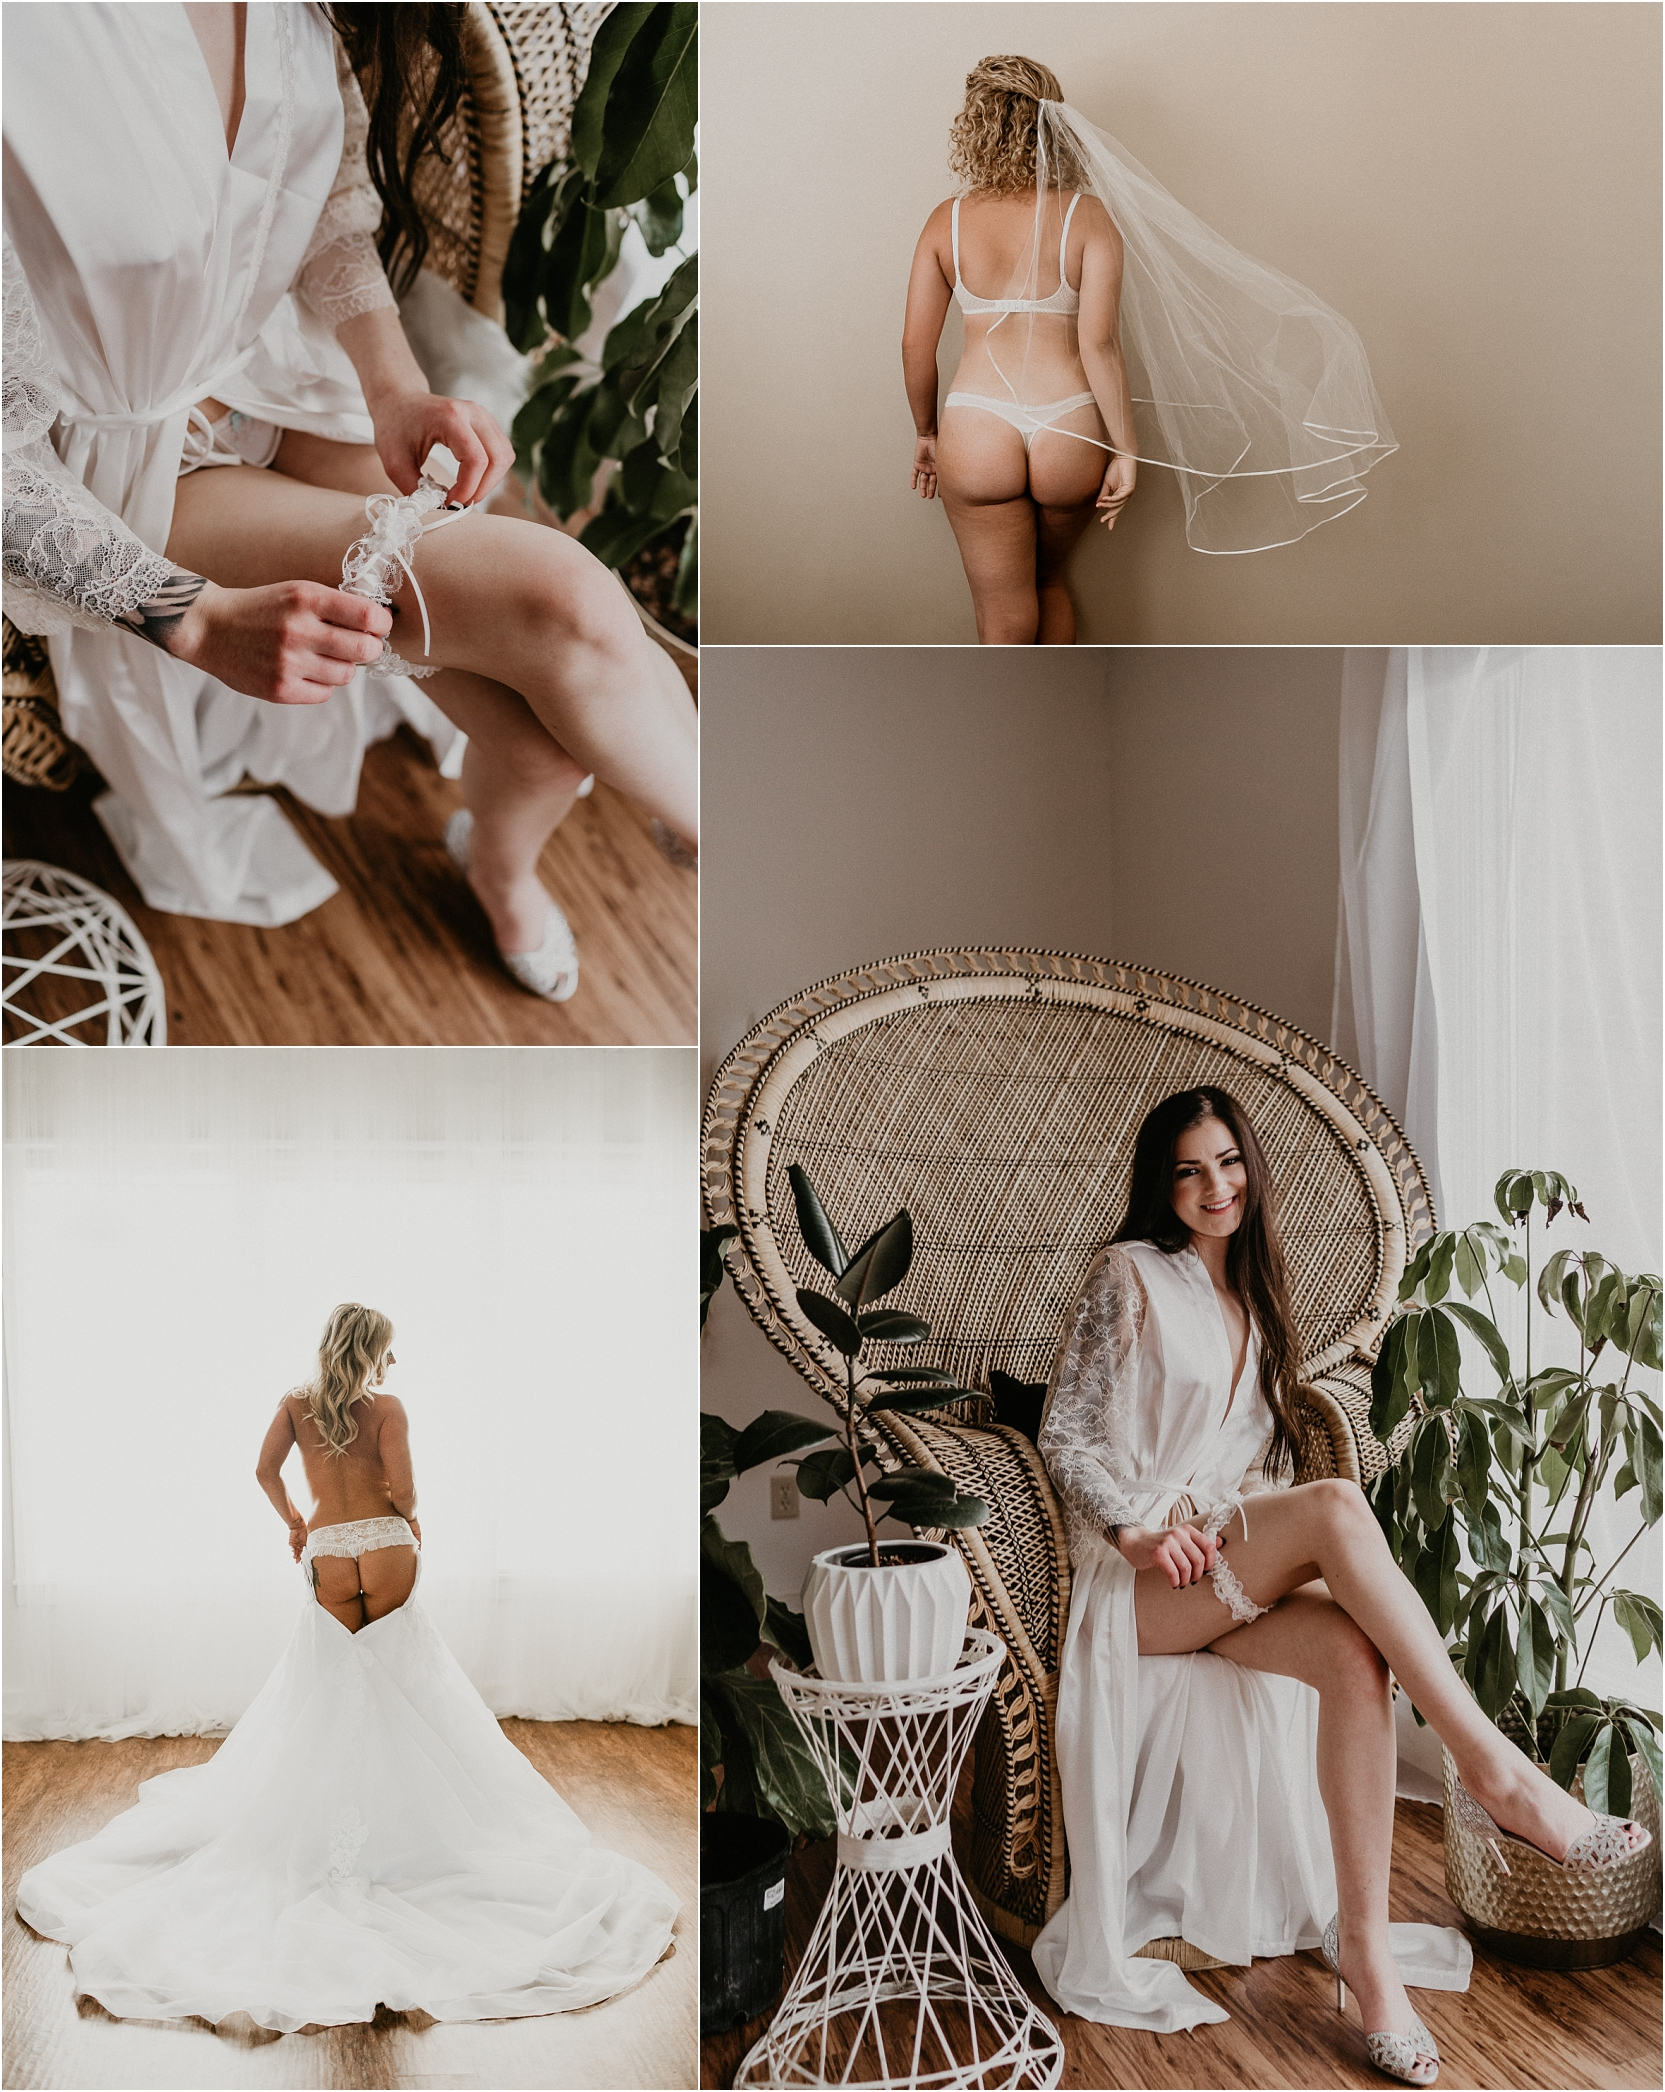 Boise, Idaho Boudoir Photographer Meridian Photographers Bridal Boudoir Elegant Veil Shots Inspiration Boise Wedding Photographer Intimate Portraits Wedding Dress Ideas Bridal Gifts Boho Studio Peacock Chair Photography Bride Portraits